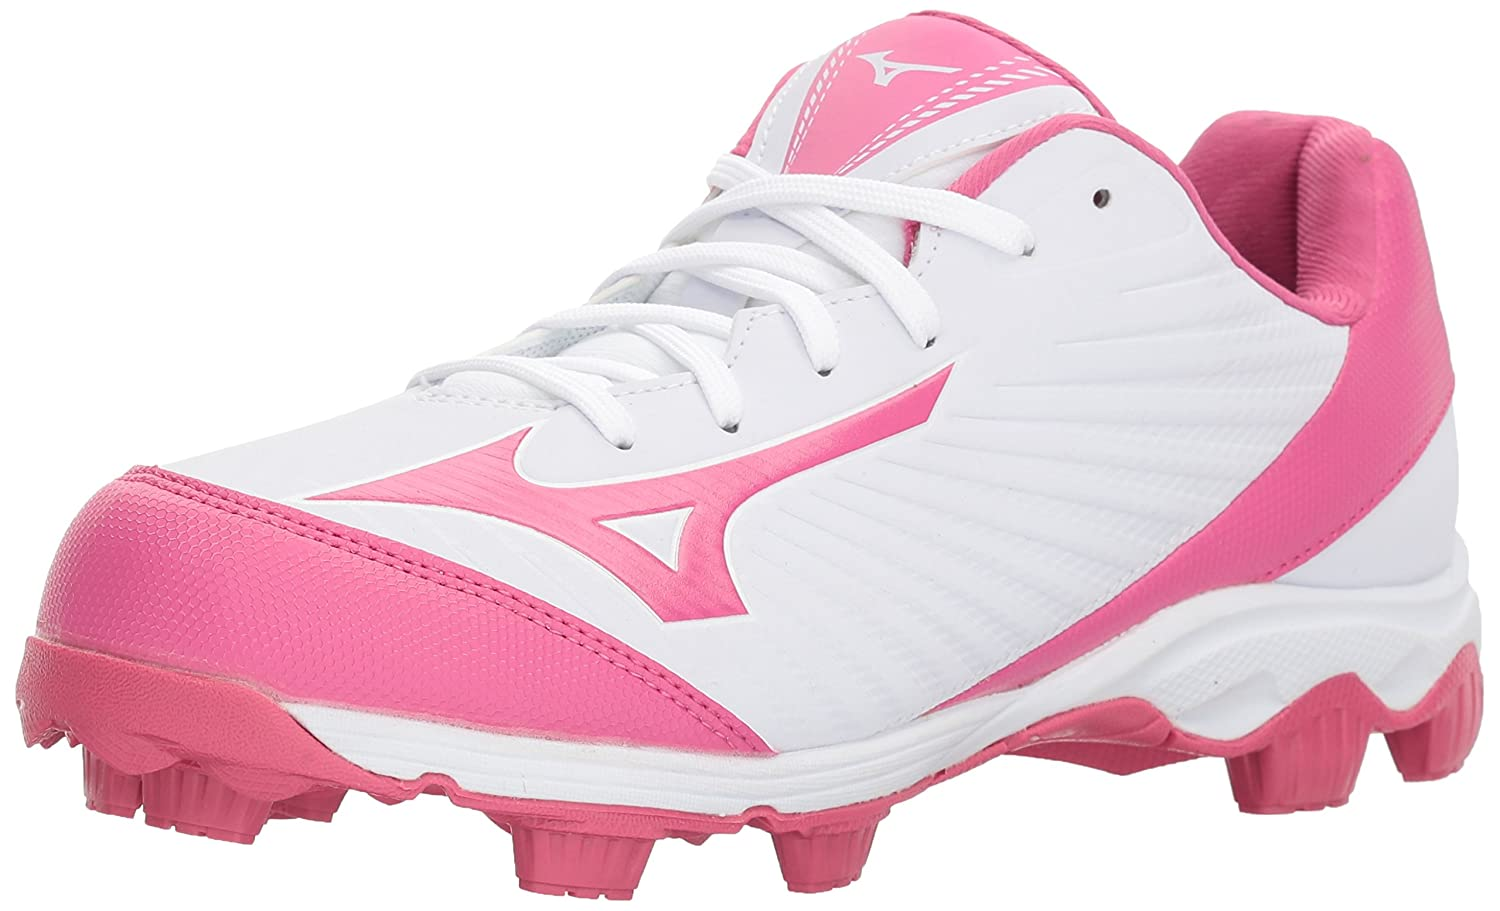 Mizuno (MIZD9) Women's 9-Spike Advanced Finch Franchise 7 Fastpitch Cleat Softball Shoe B071G19MTH 7 B(M) US|White/Pink